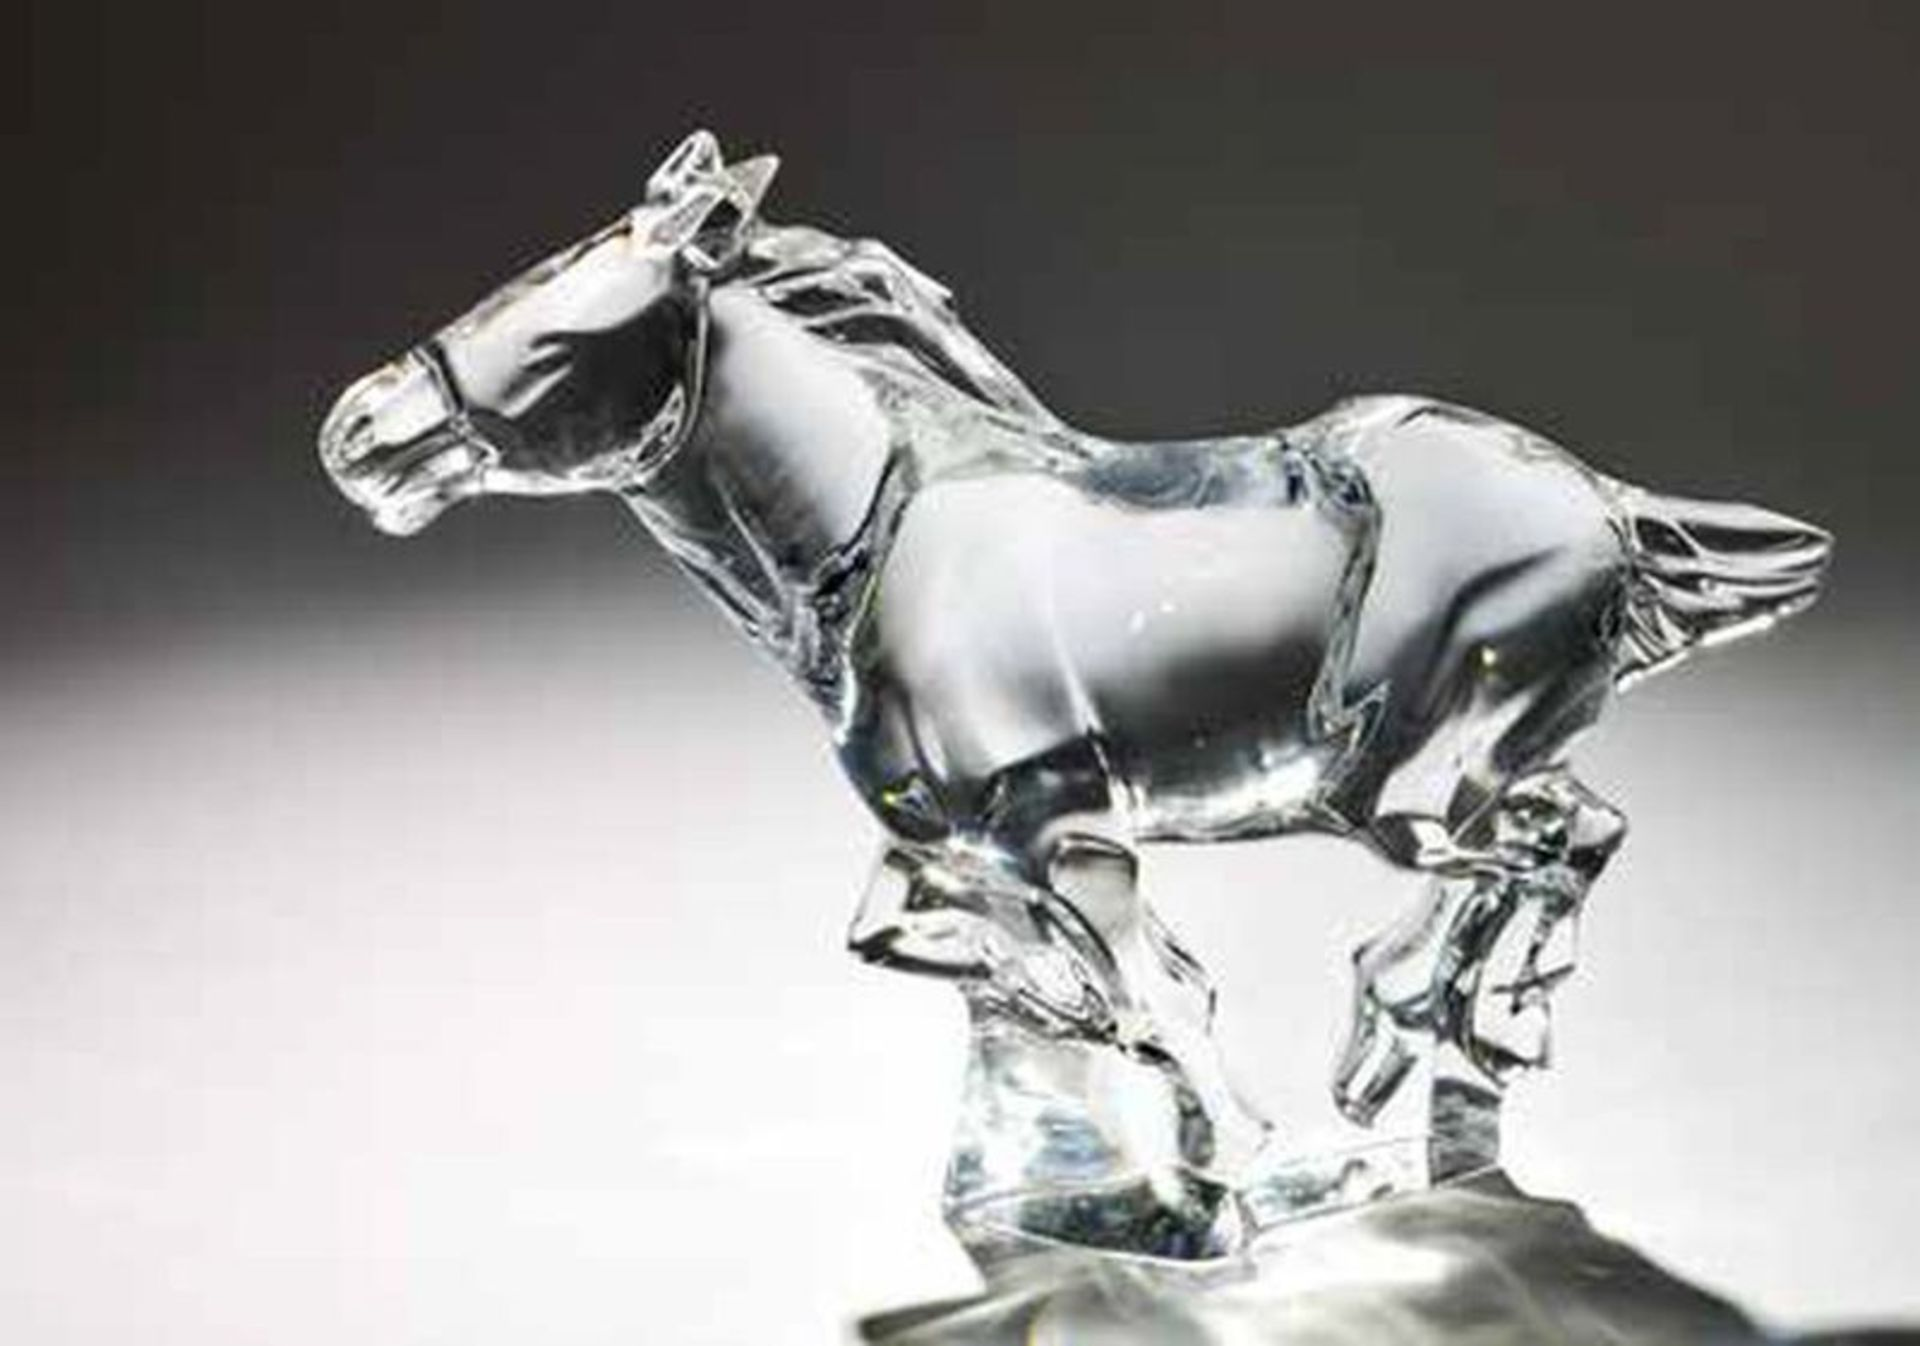 BACCARAT GALLOPING HORSE - Crystal Condition: As new, unused Dimensions: 30 x 23 cm [...]